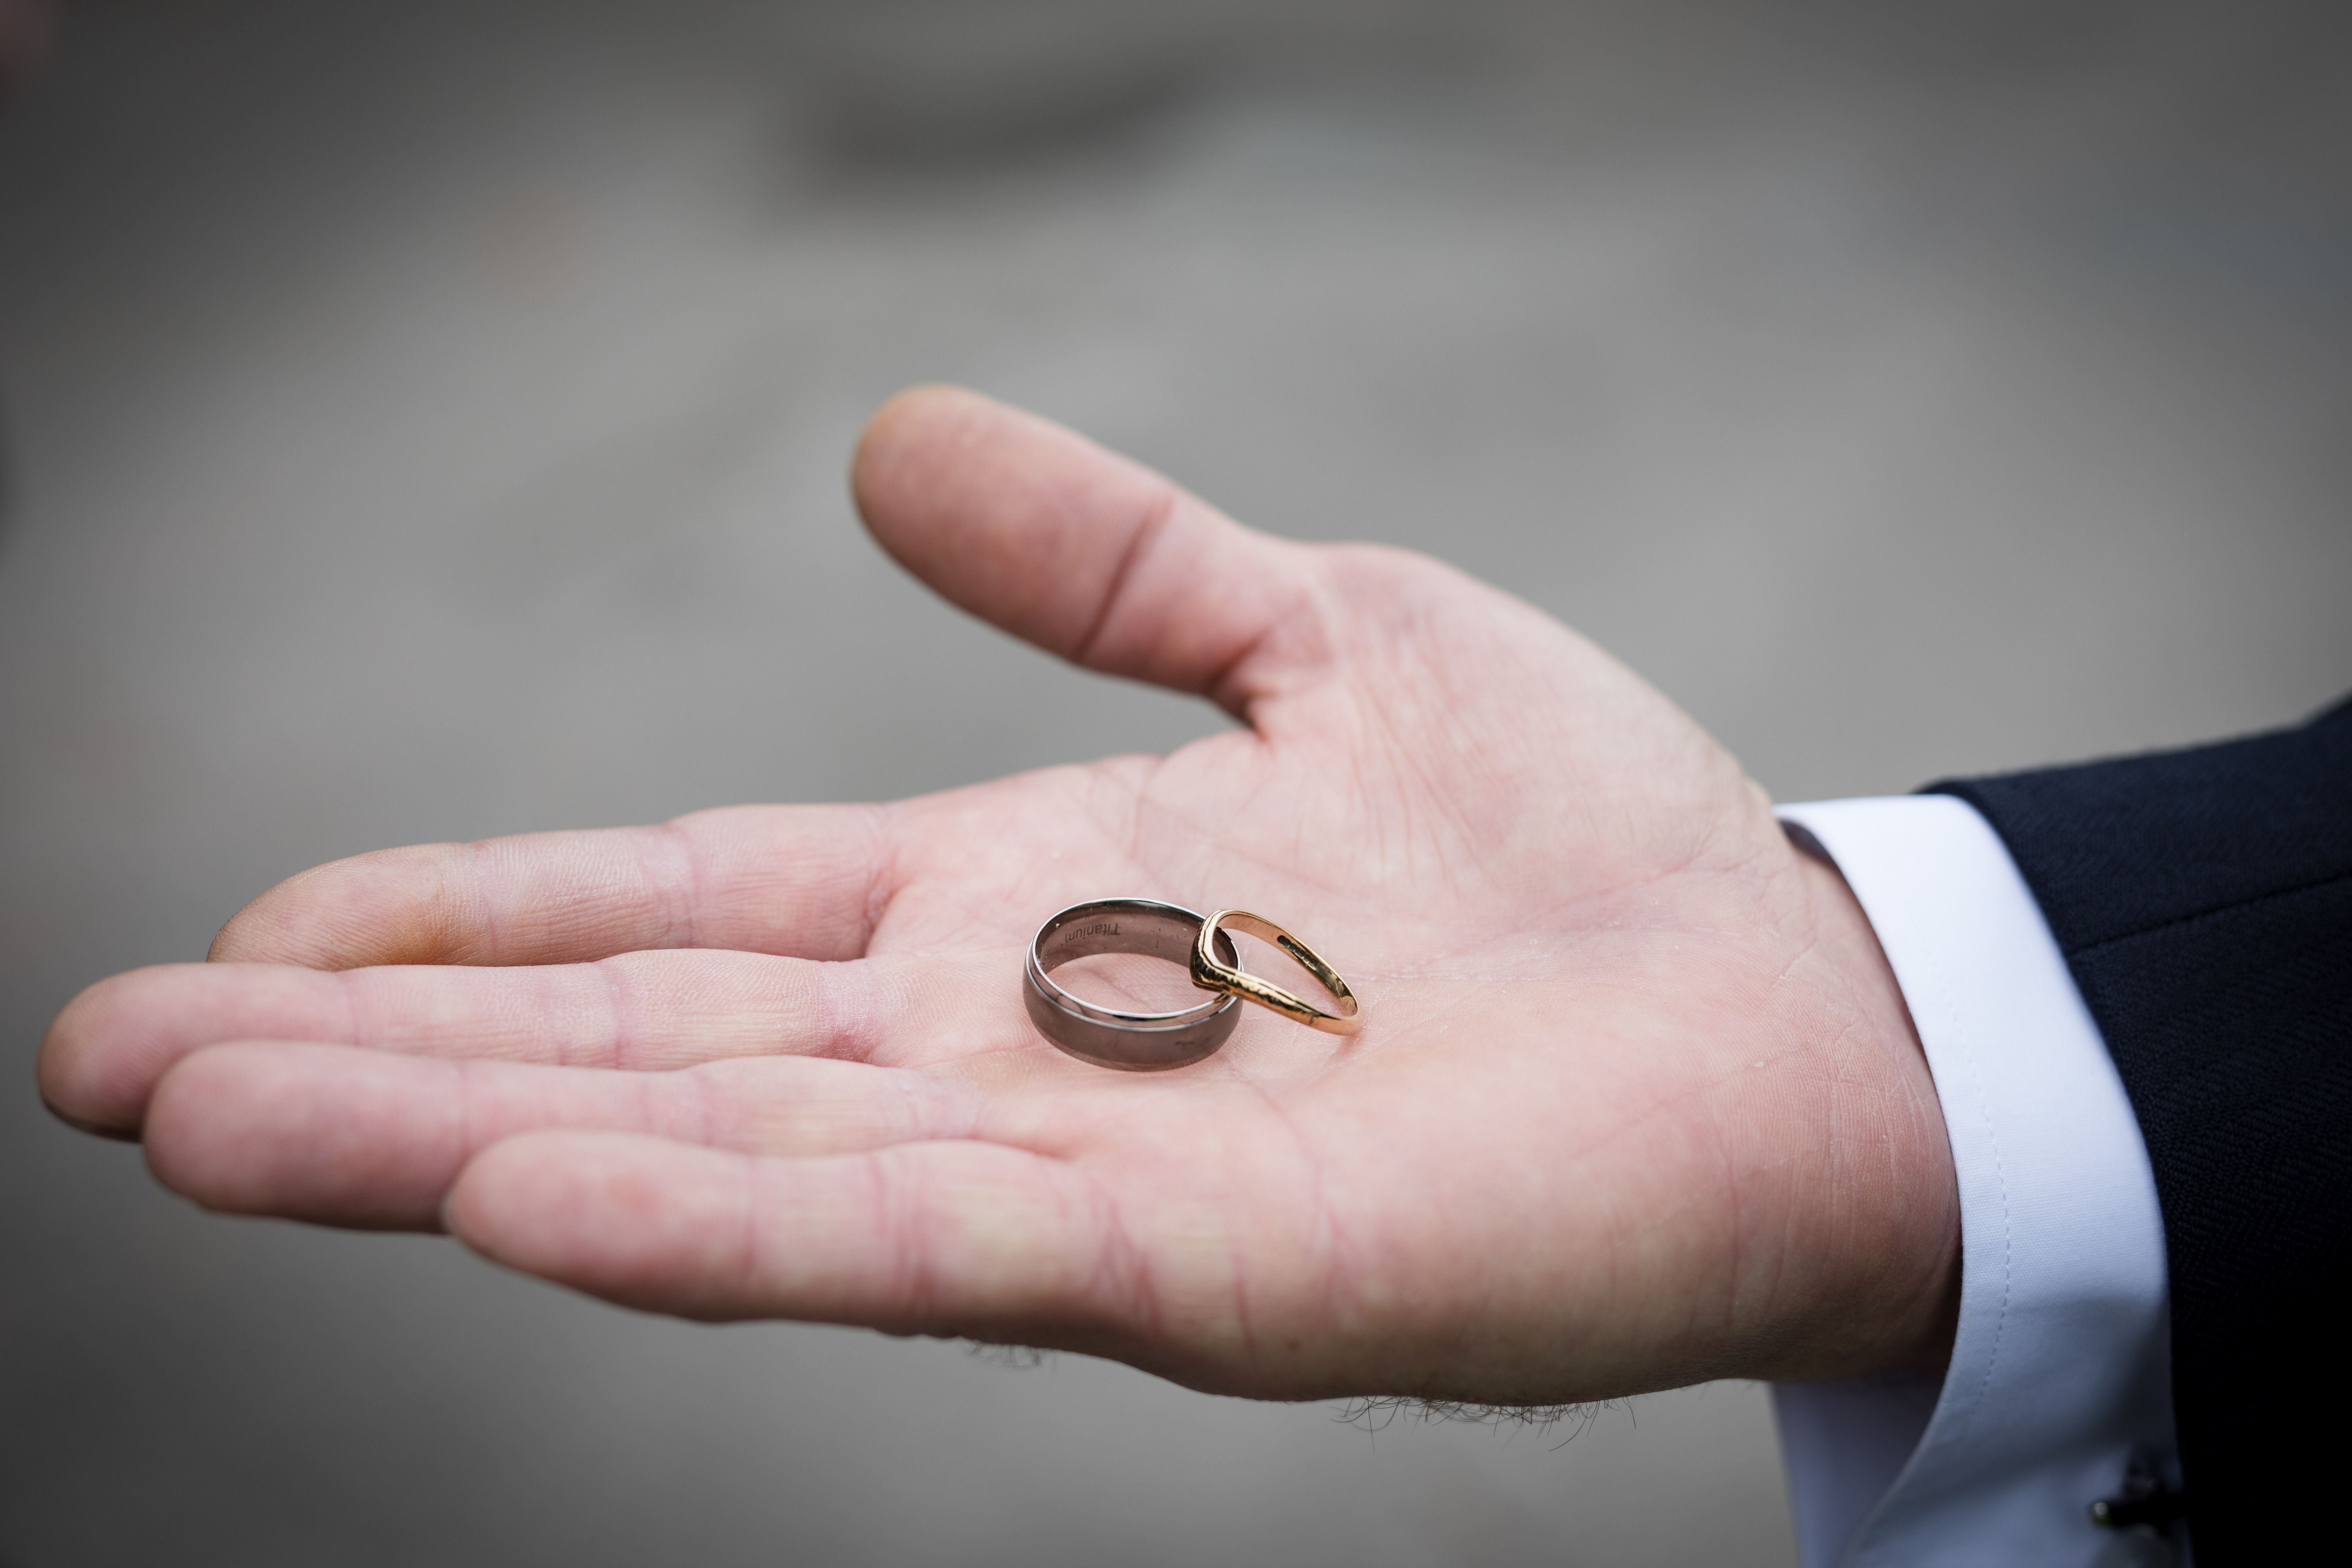 Two wedding rings, one silver and wide, one gold and thin, sit on the palm of a man's hand.